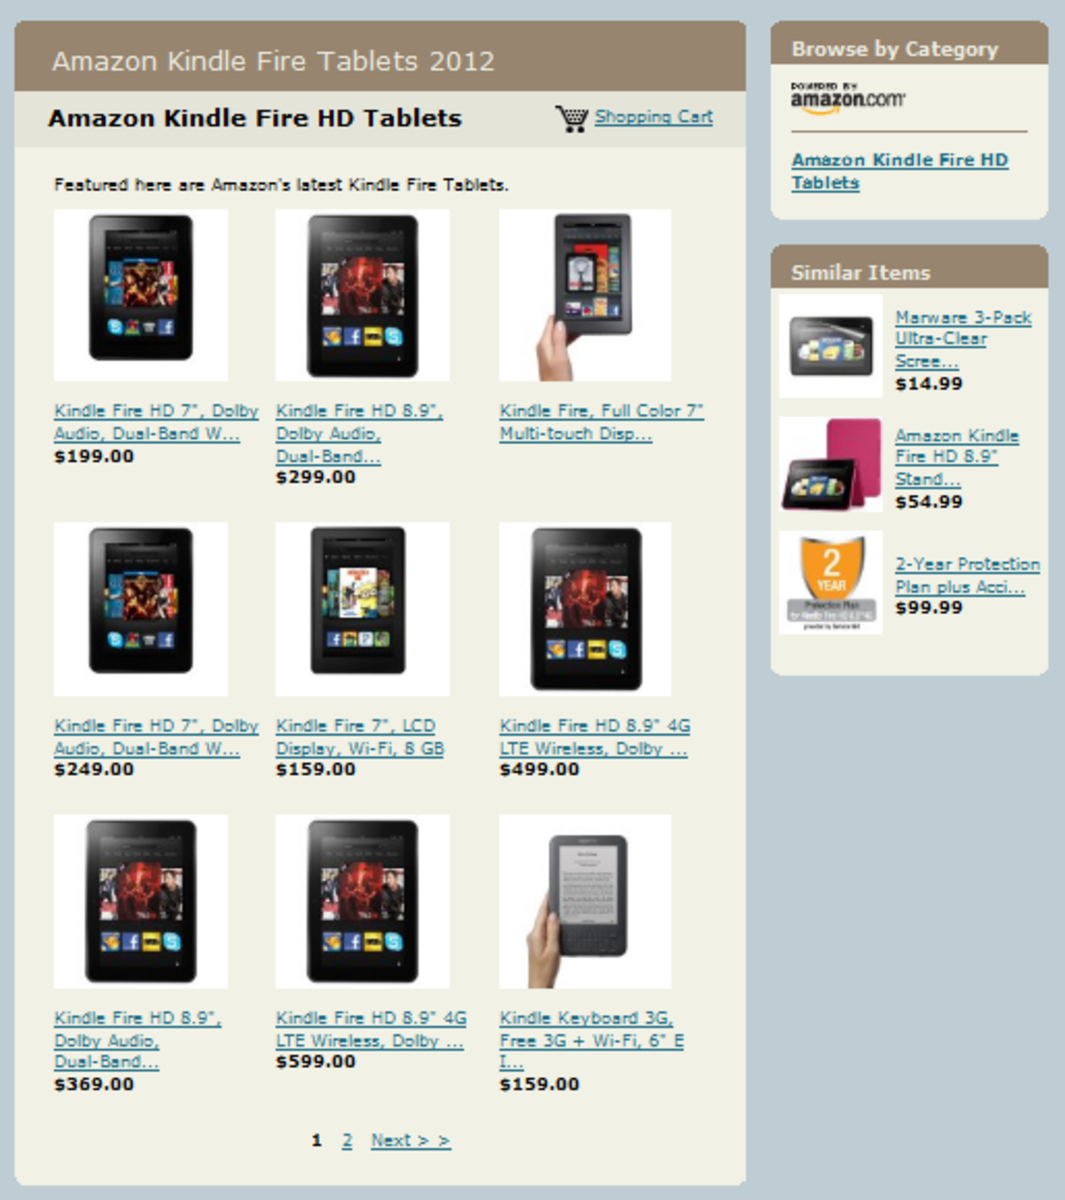 Amazon aStore Featuring Kindle Fire Tablets